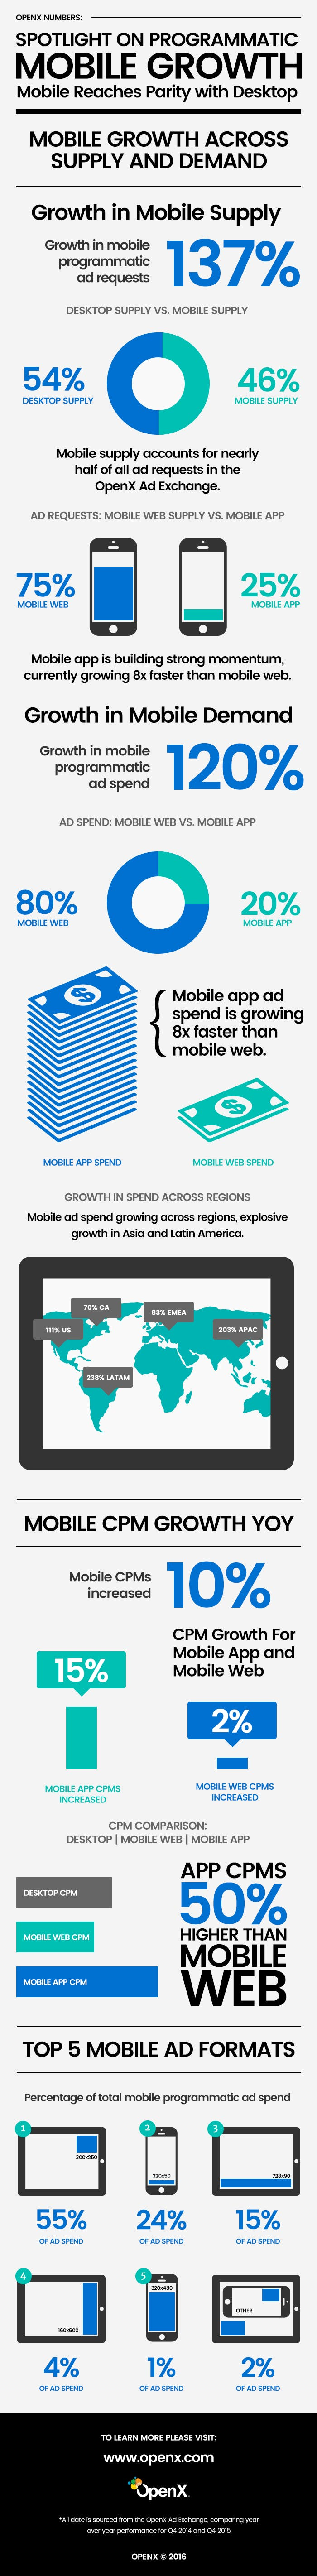 MobileInfographic 4 25 16 - OpenX + AMP = An Awesome Mobile Web